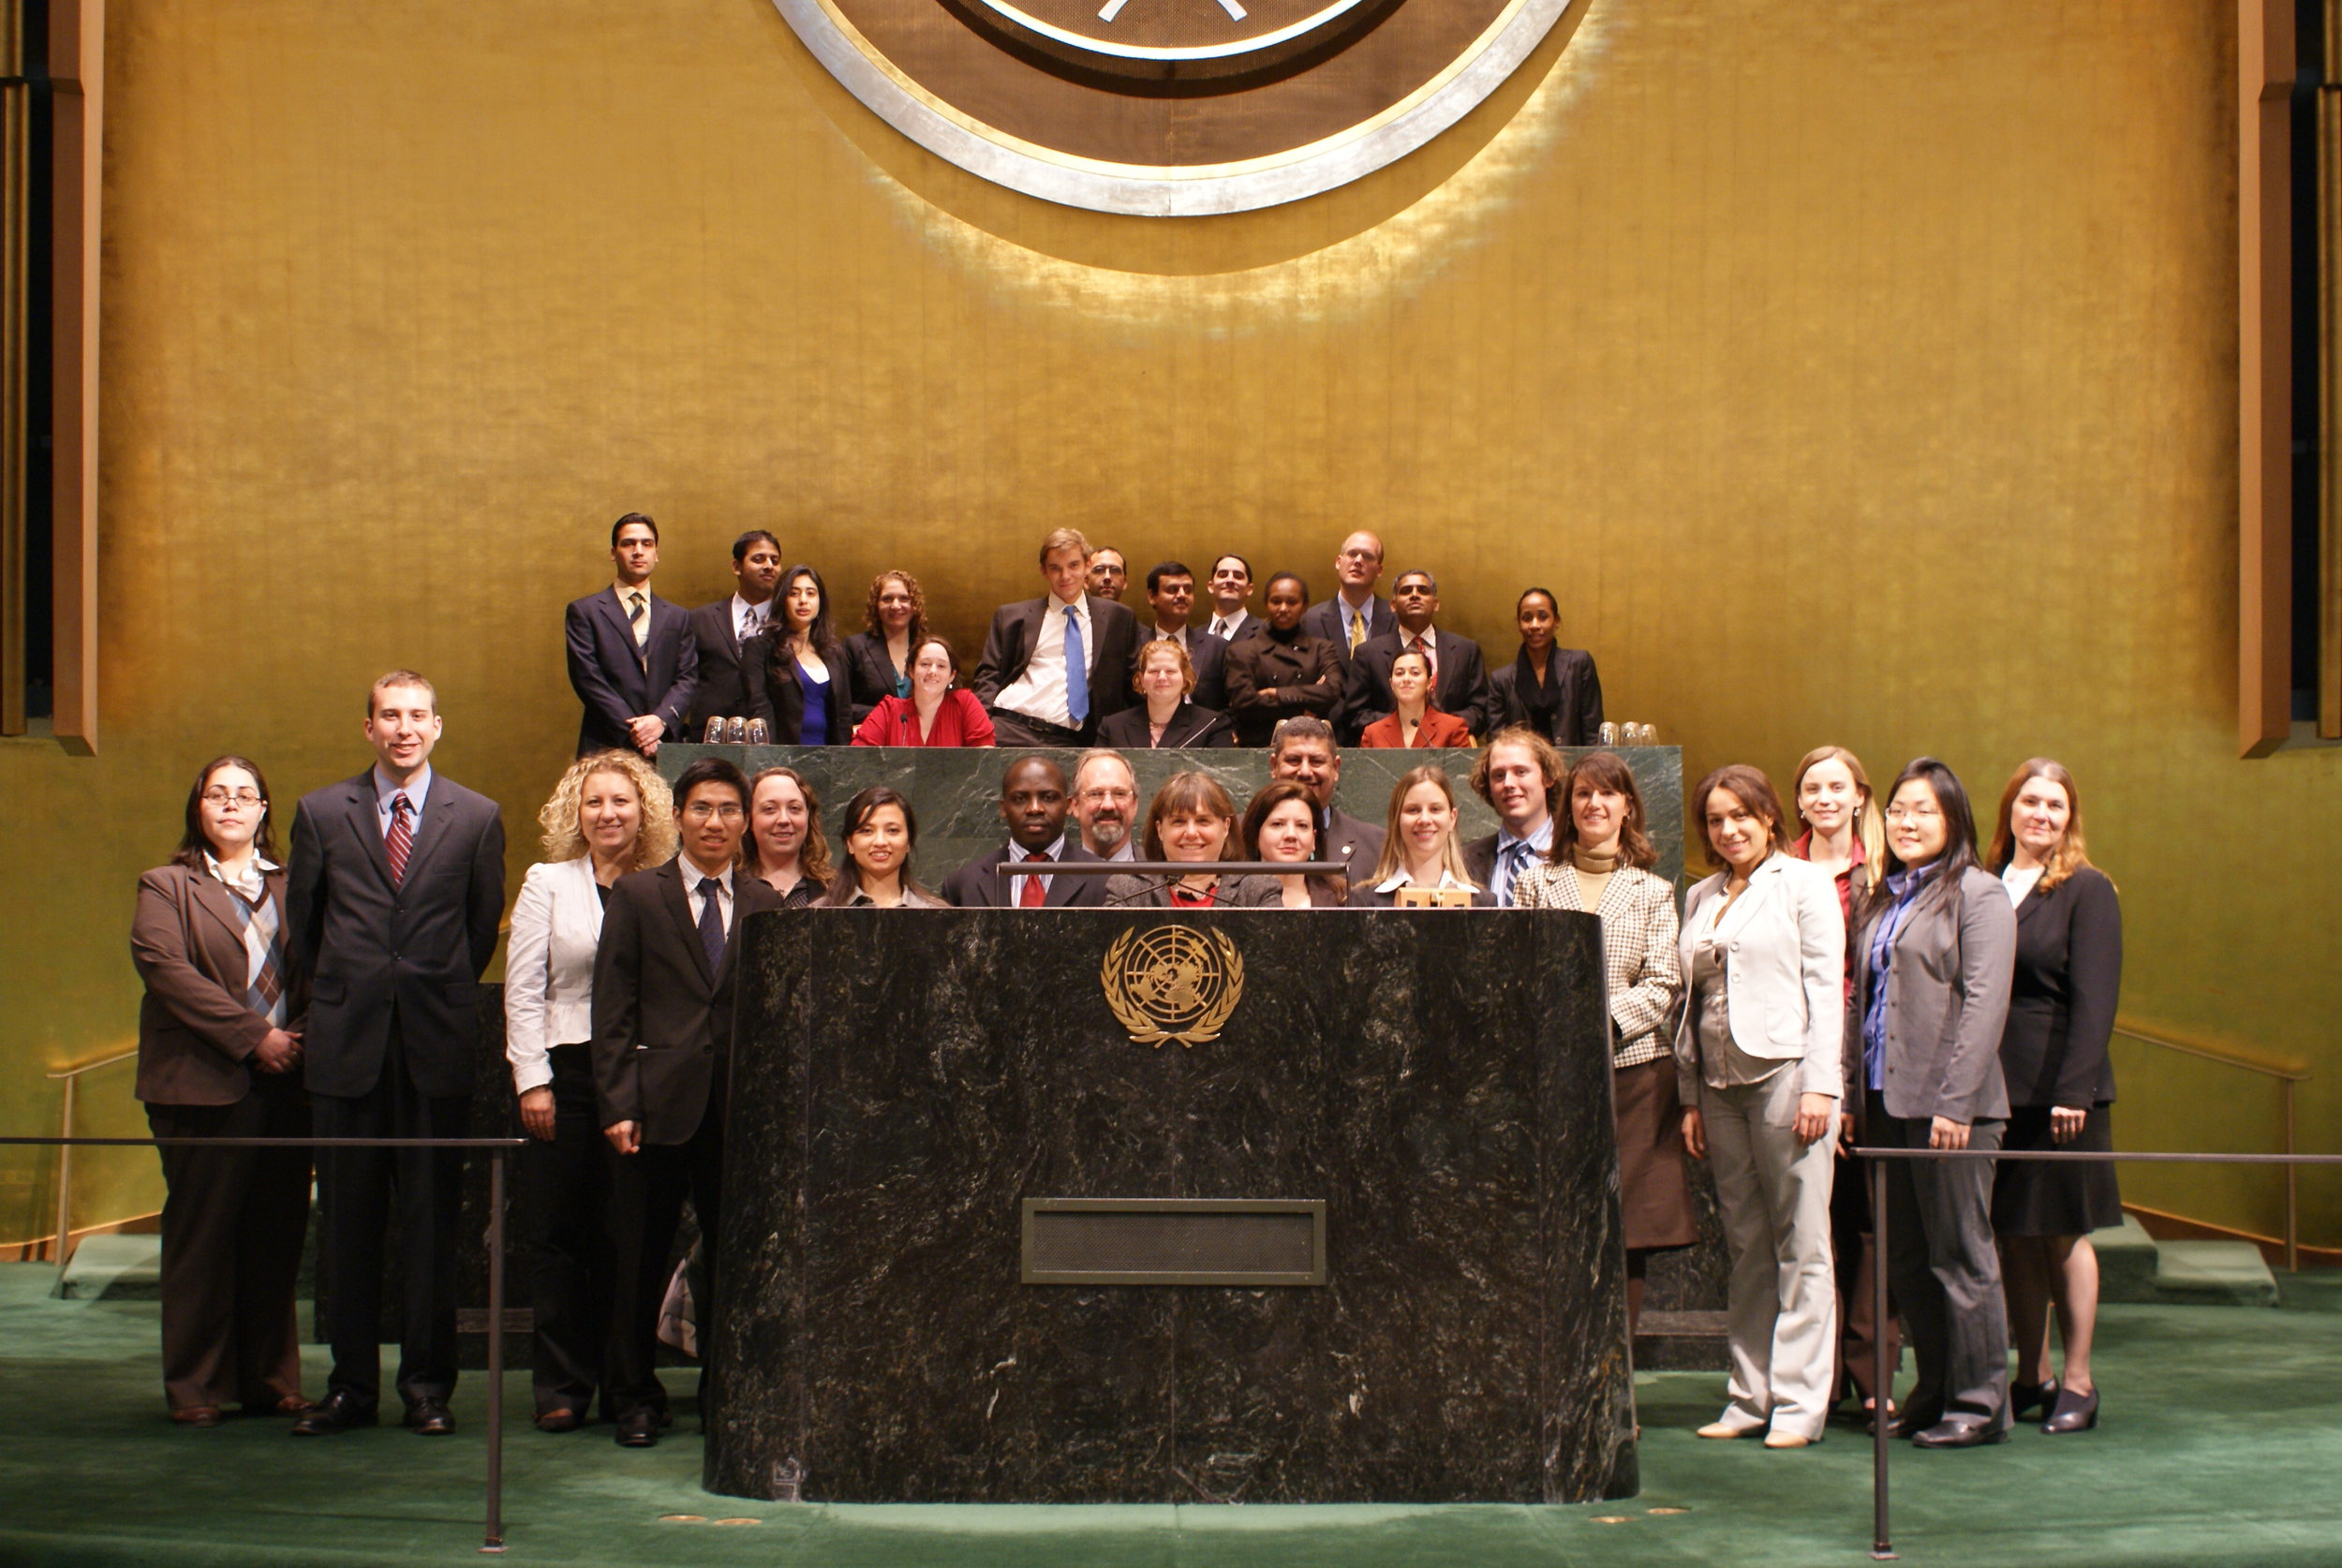 Maxwell Humanitarian Action Class in New York at the UN General Assembly (2008)